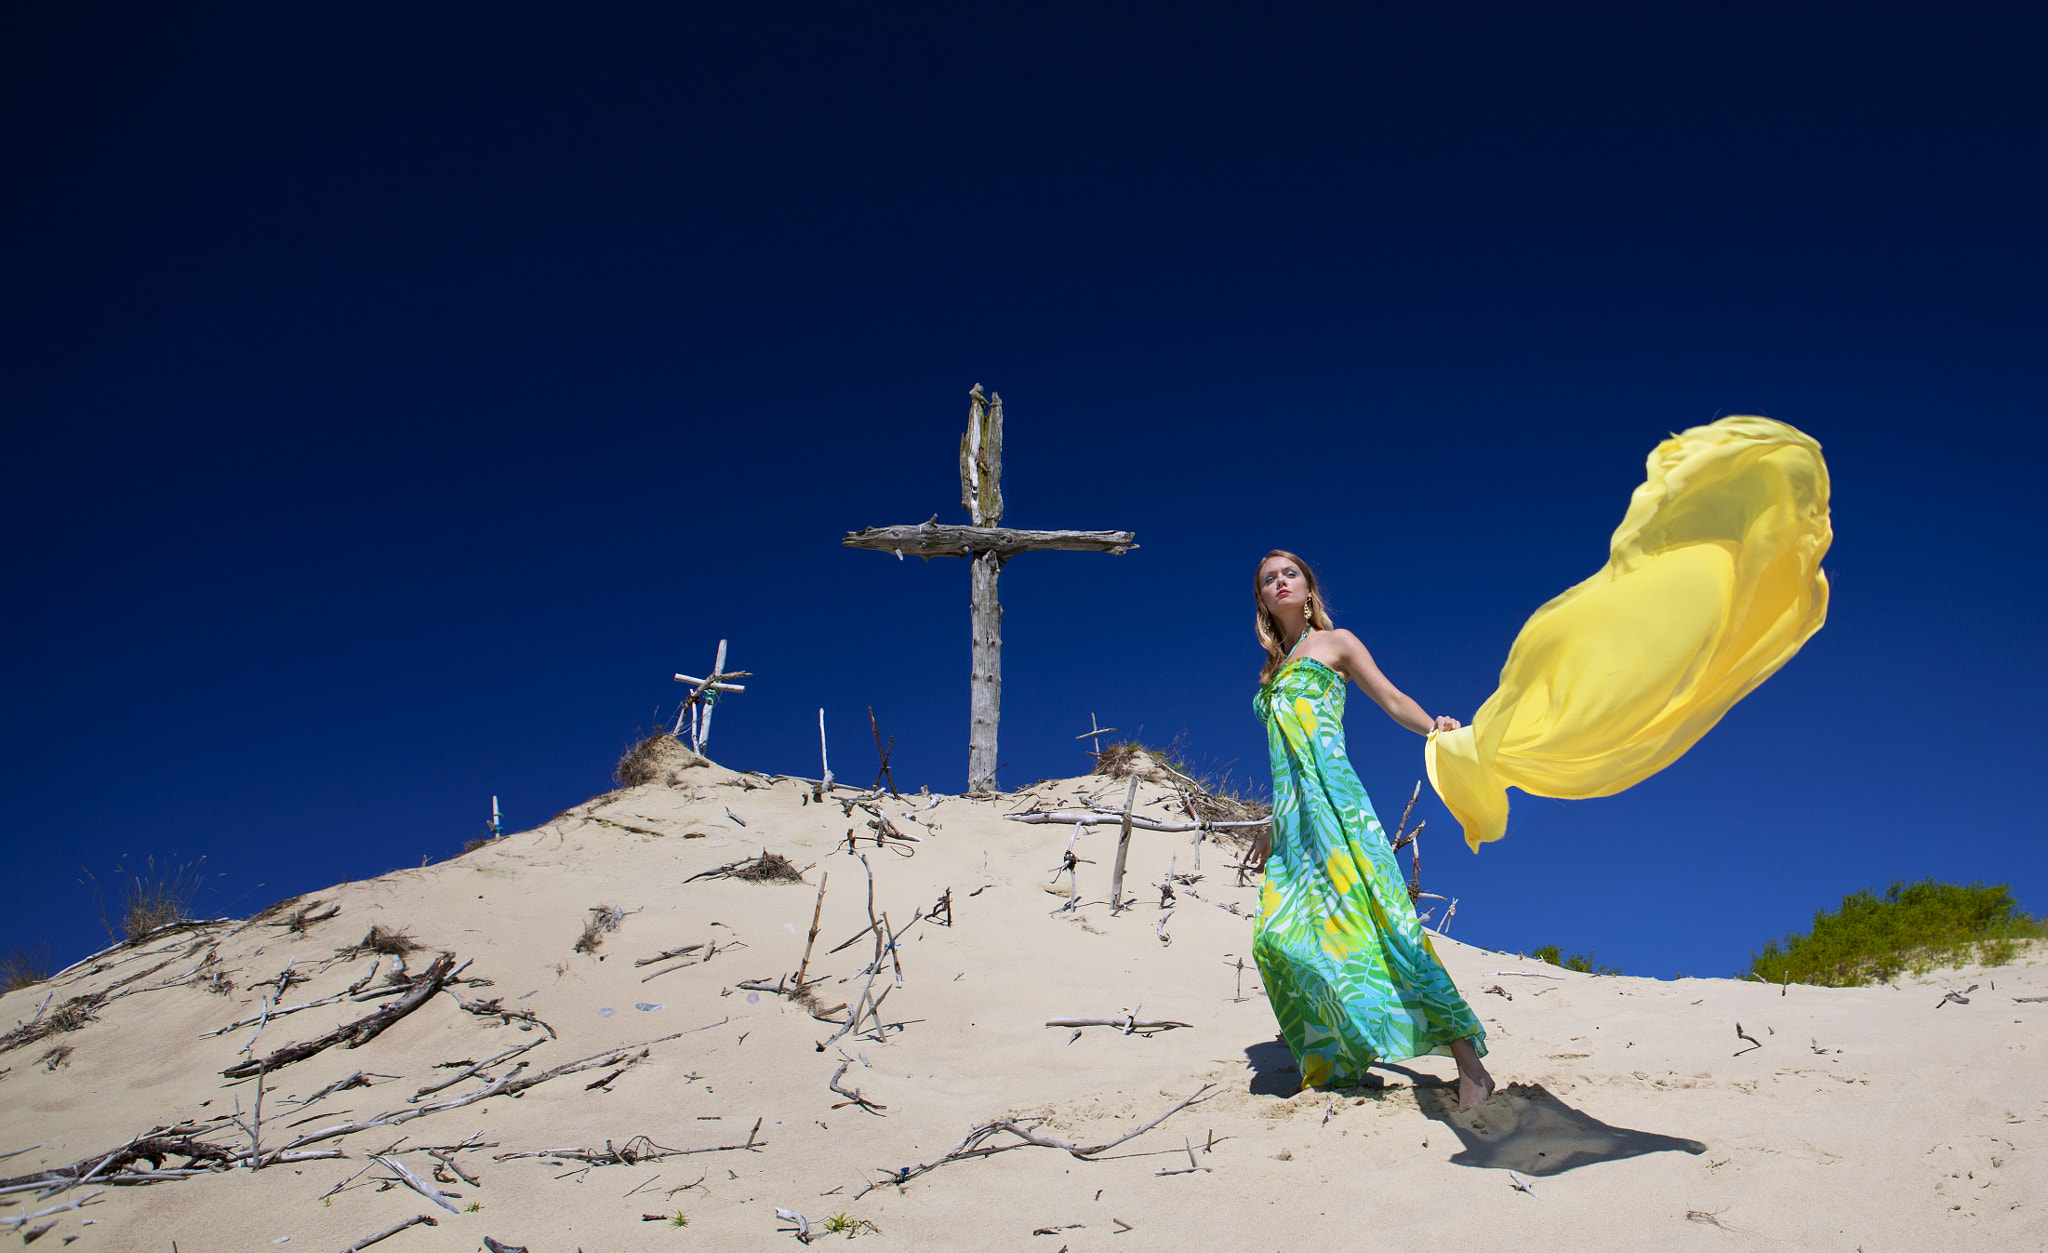 Photograph fashion in the desert by volkan kovancısoy on 500px